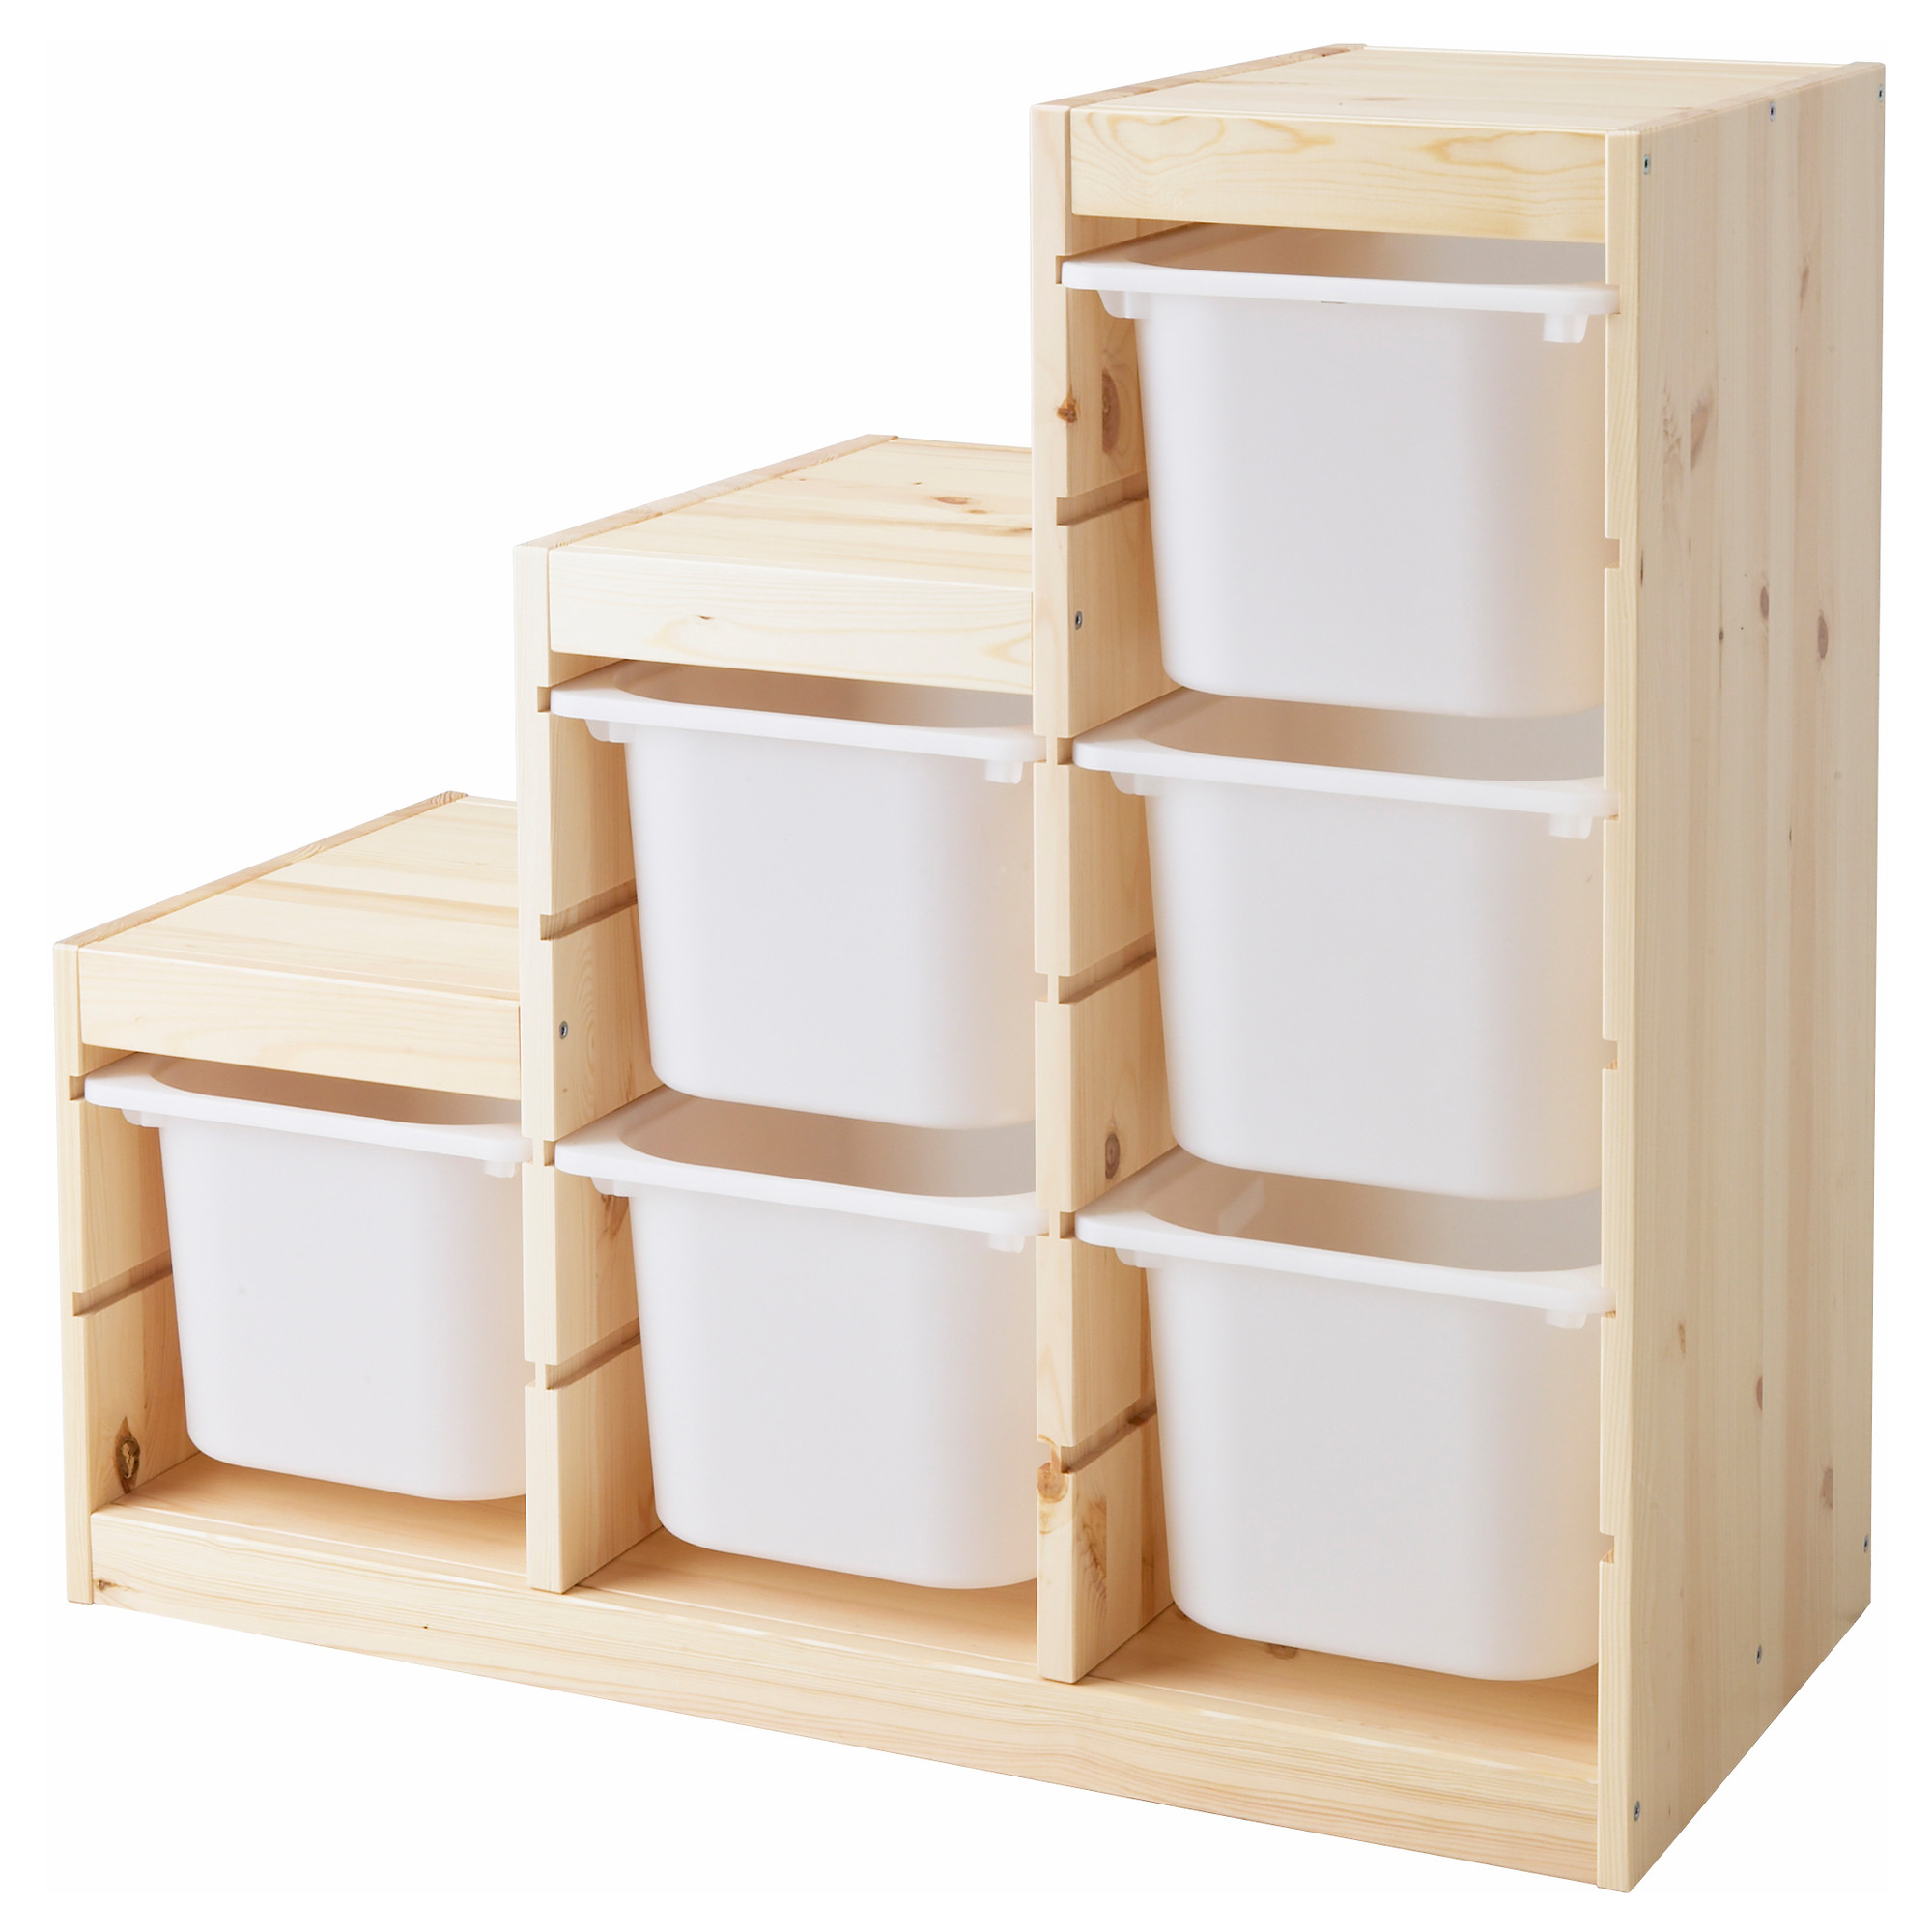 Ikea toy Storage with stairs shape plus six boxes